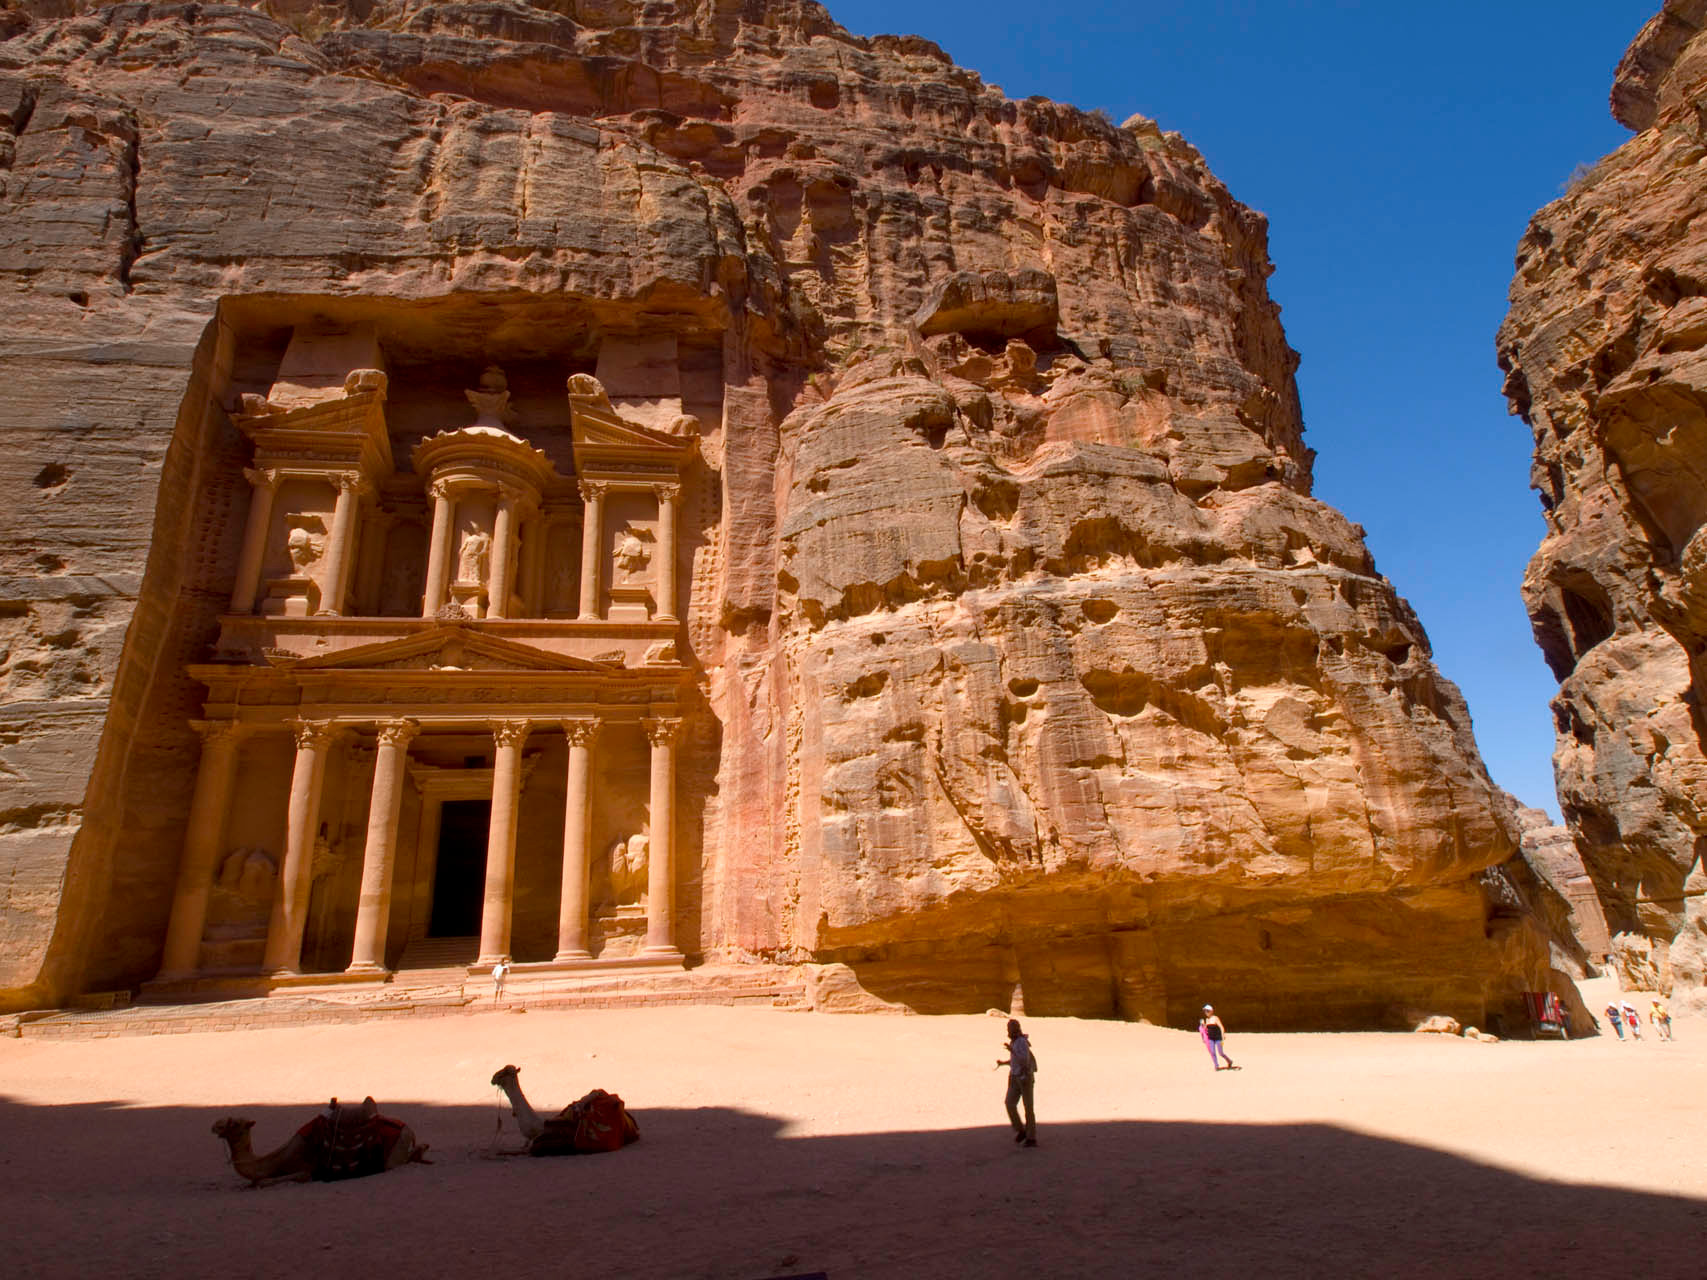 Jordan: Al Khazneh or The Treasury at Petra